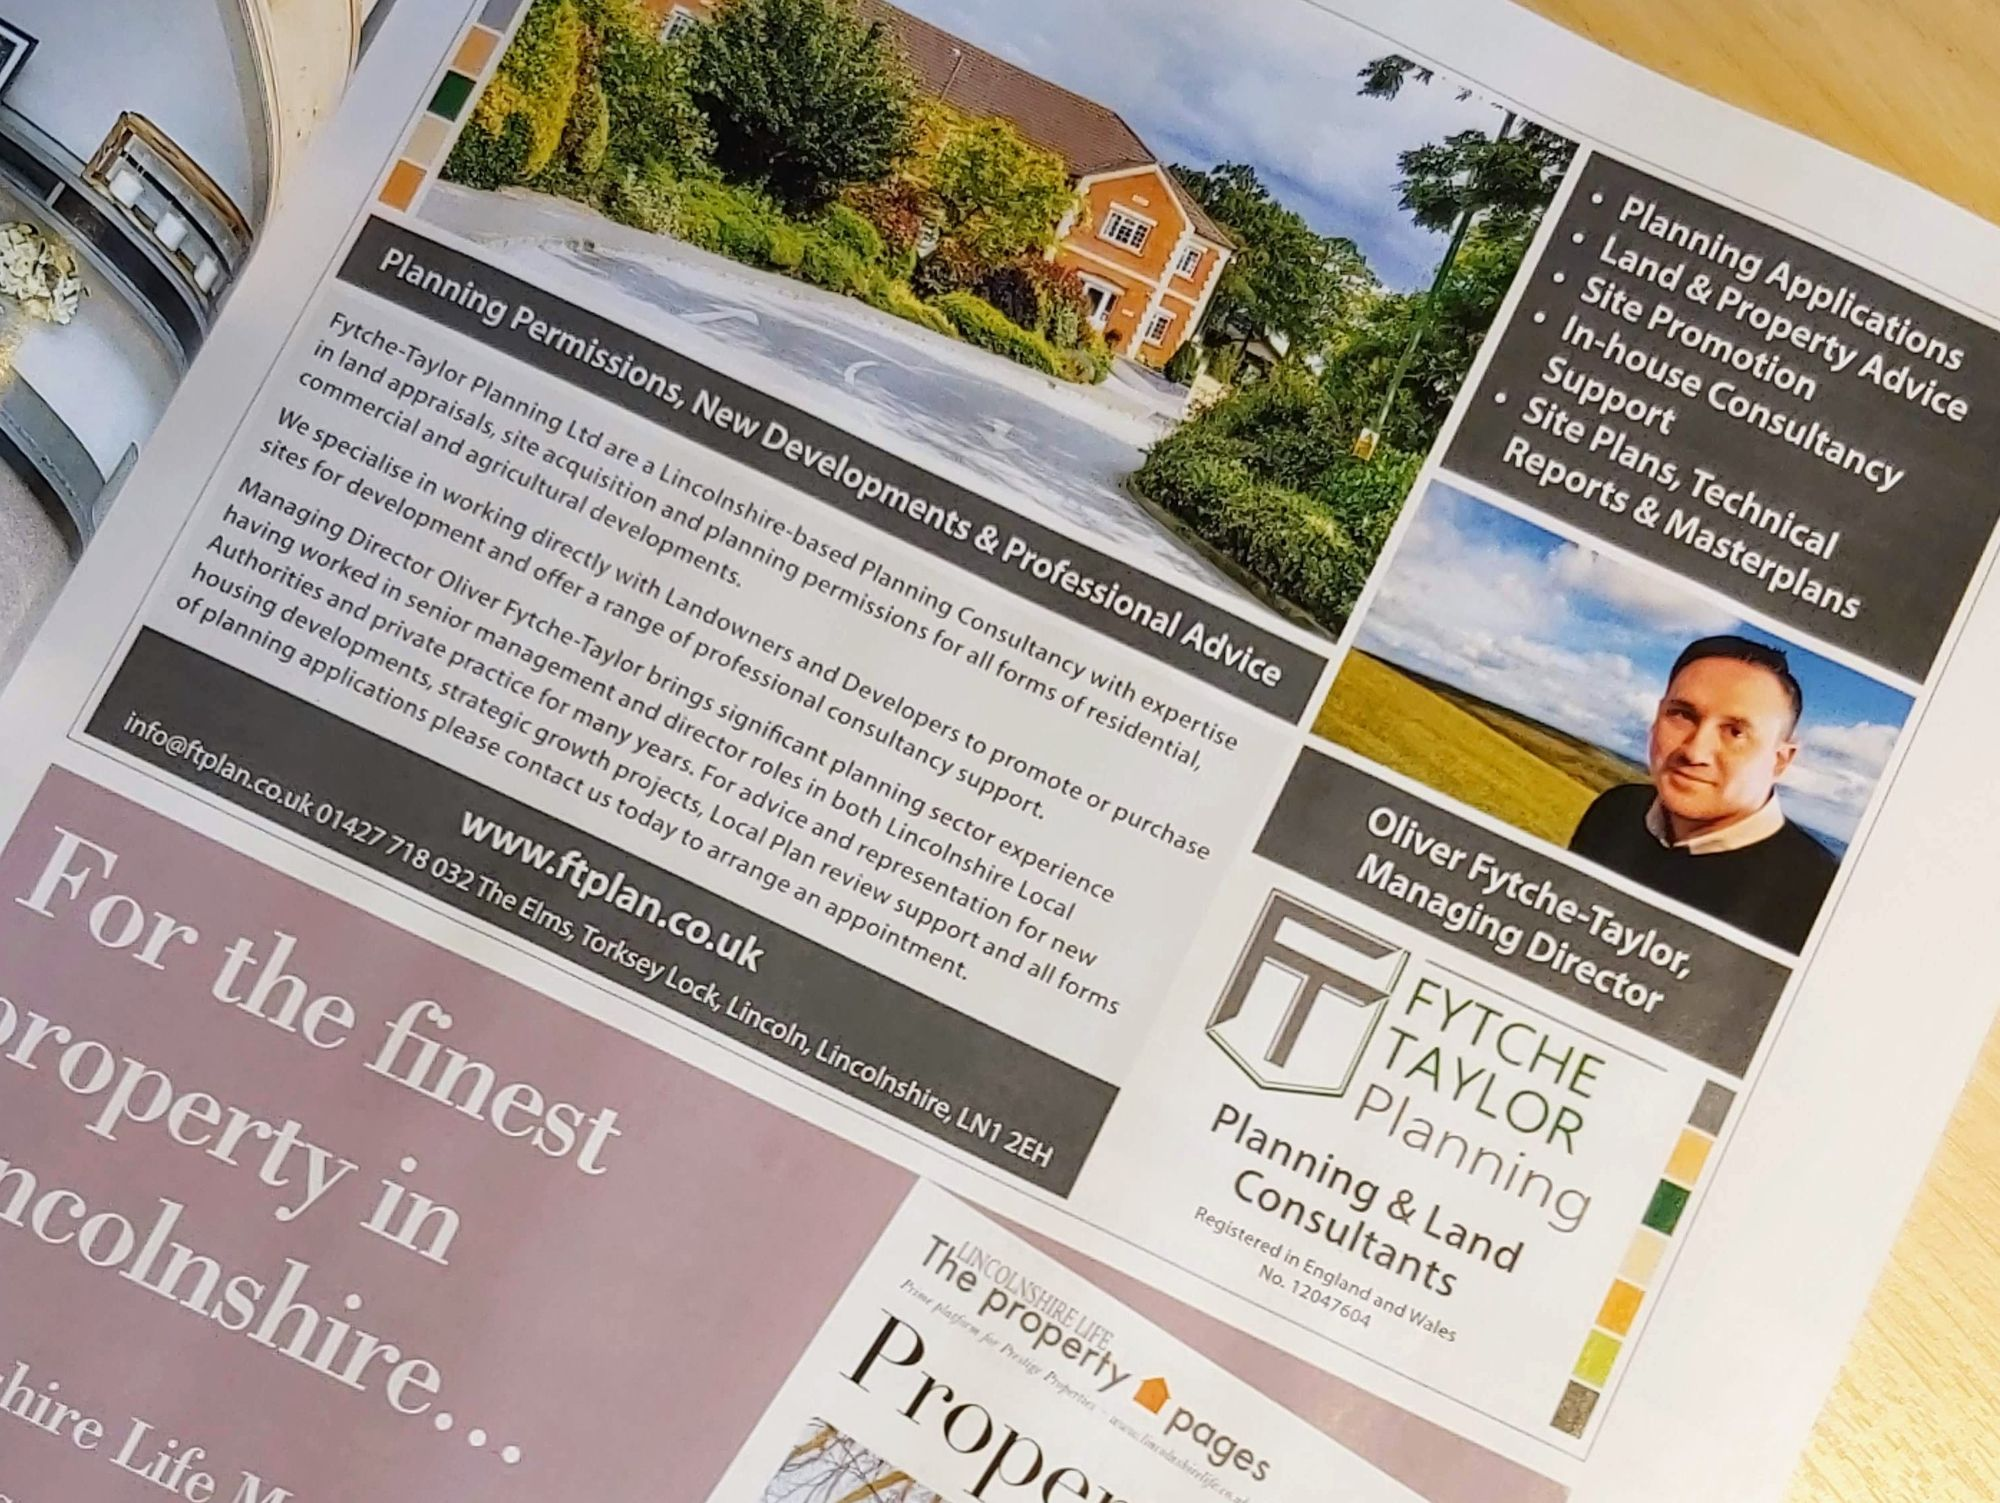 Lincolnshire Life Fytche-Taylor Planning